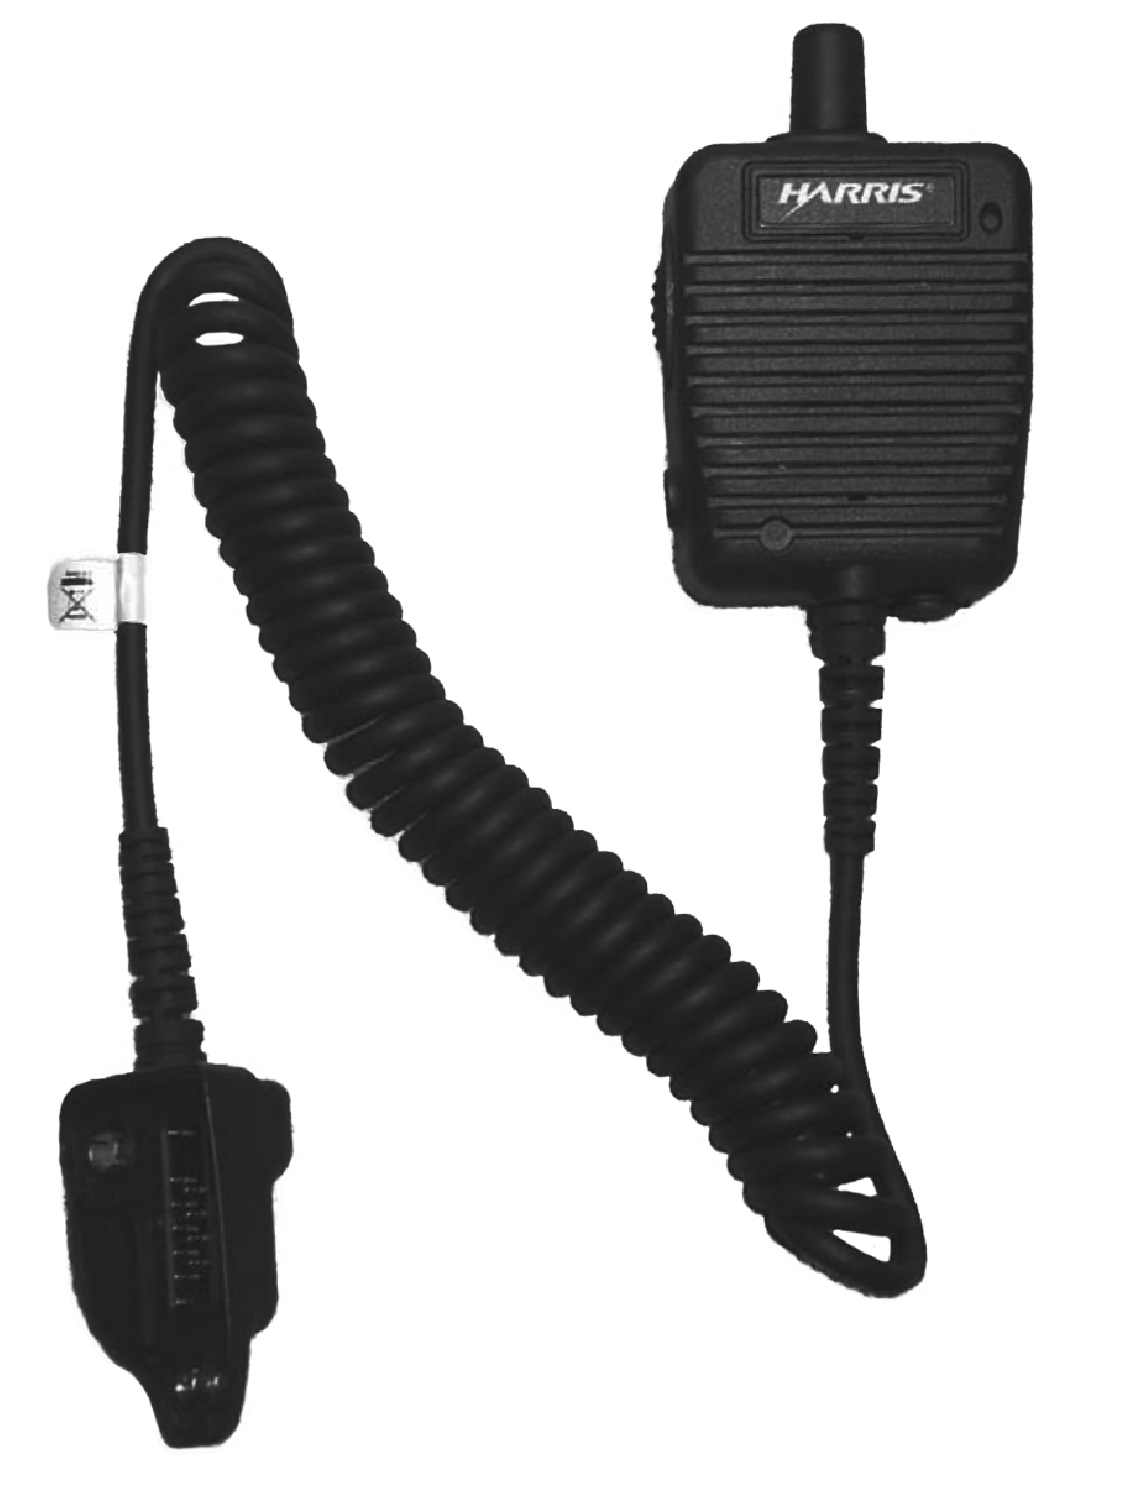 Harris MC-009104-002 Earpieces